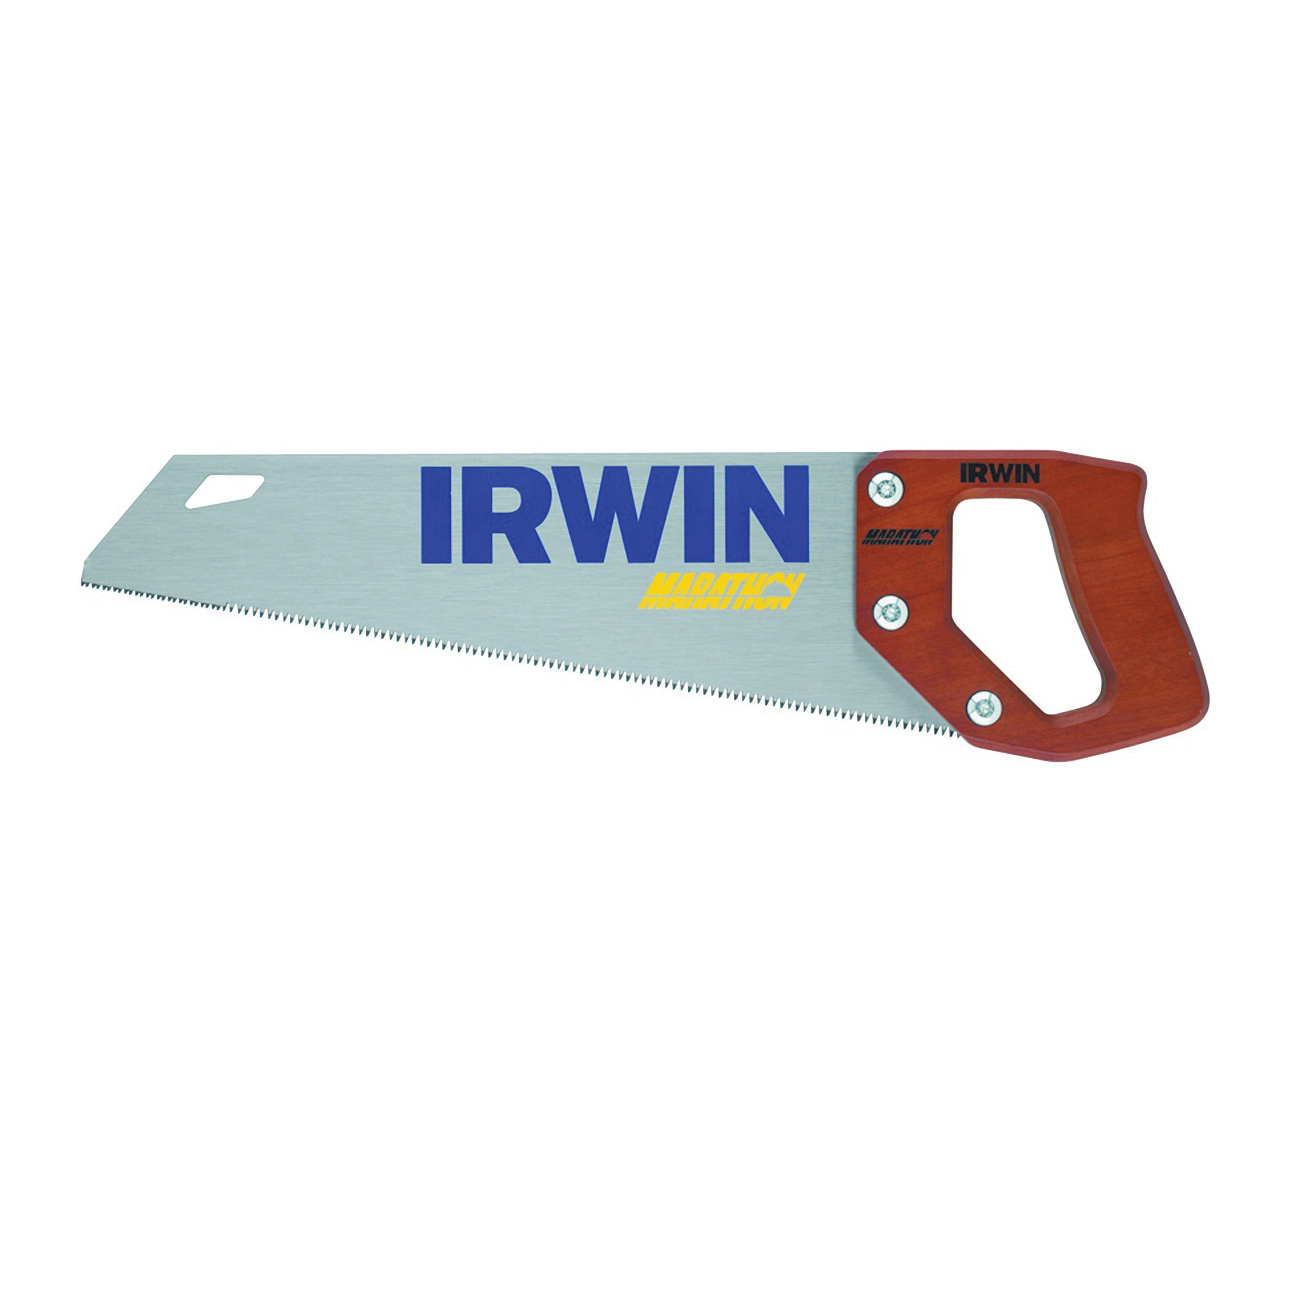 Picture of IRWIN 2011102 Coarse Cut Saw, 15 in L Blade, 9 TPI, Steel Blade, Hardwood Handle